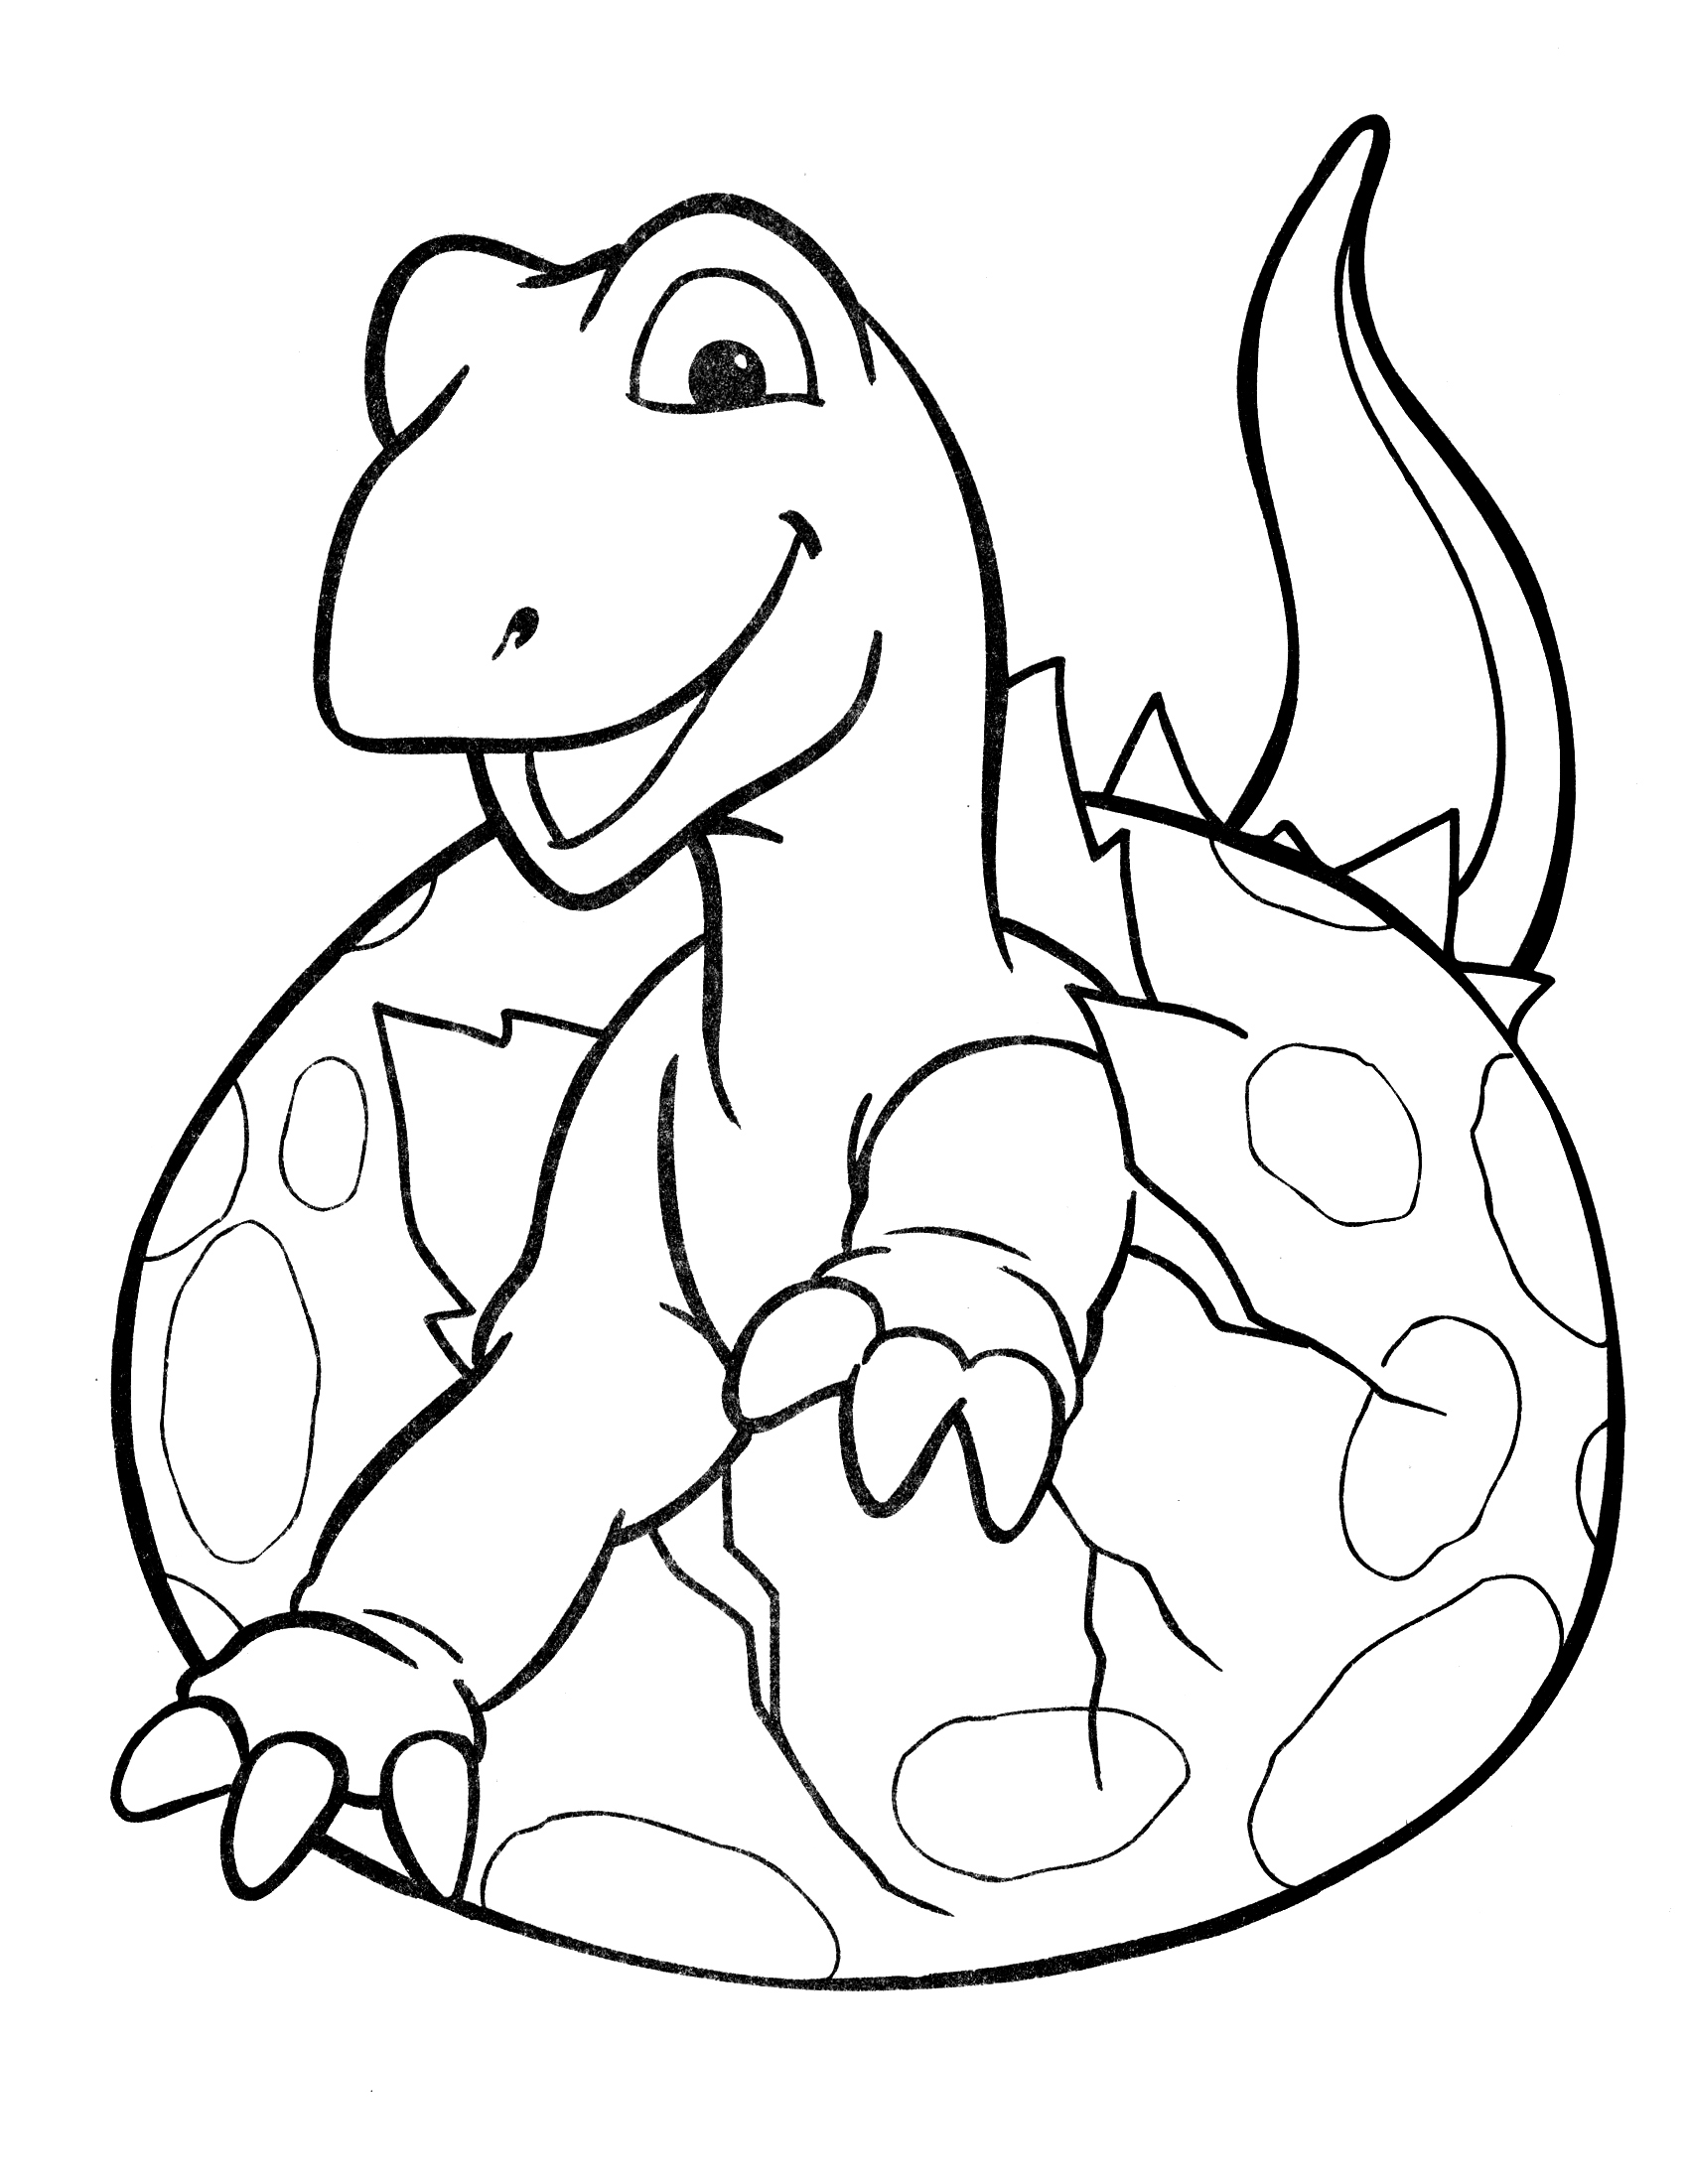 dino free coloring pages for kids - Crayola Coloring Pages